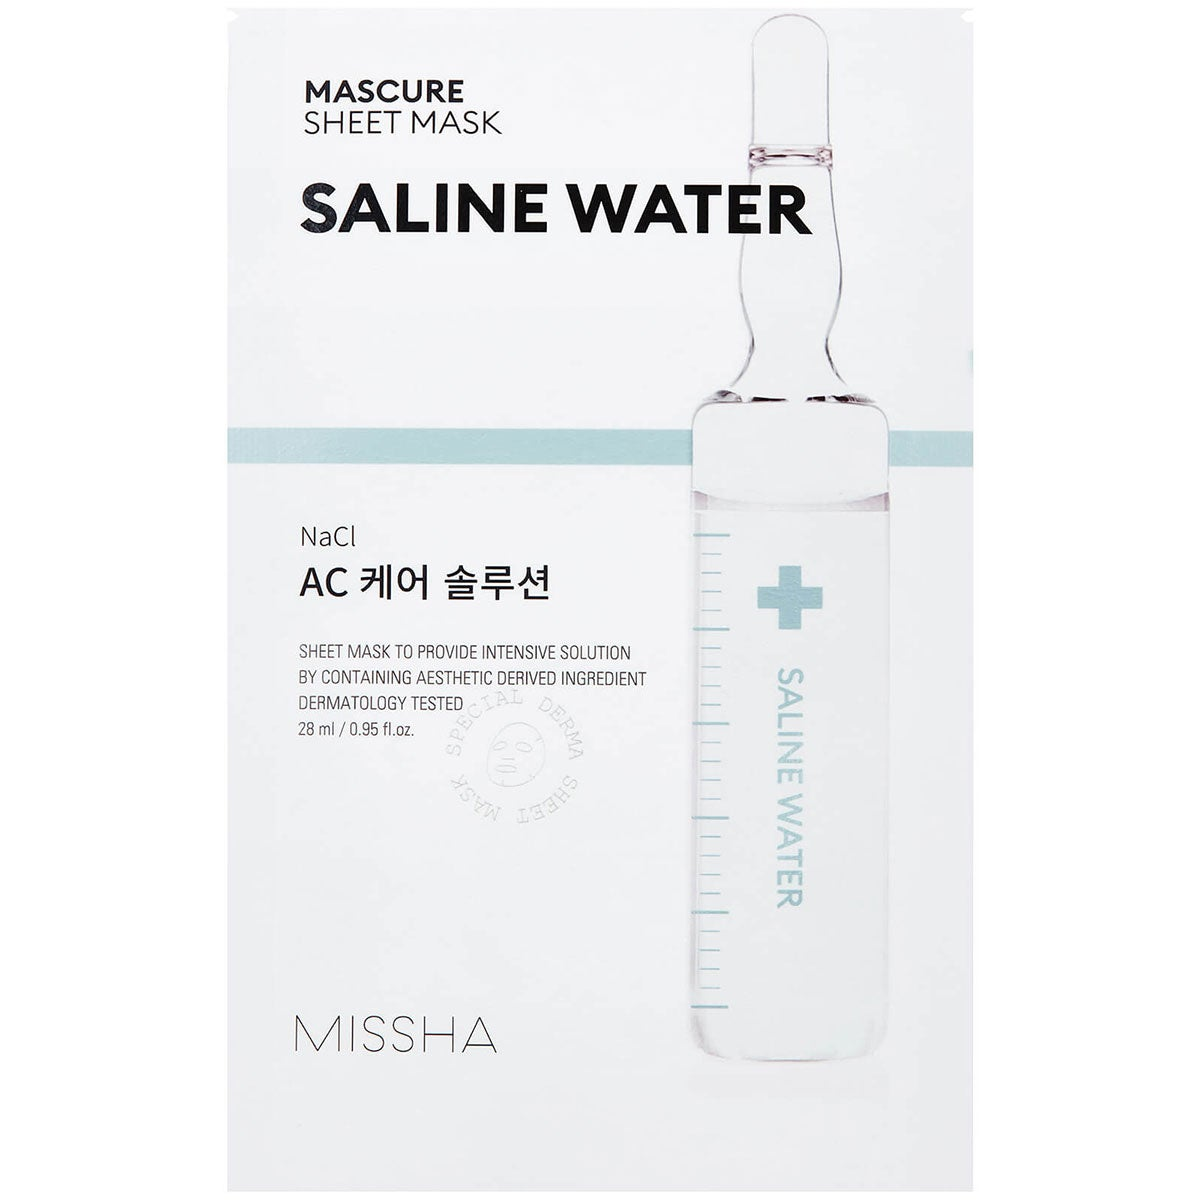 MISSHA Mascure Ac Care Solution Sheet Mask